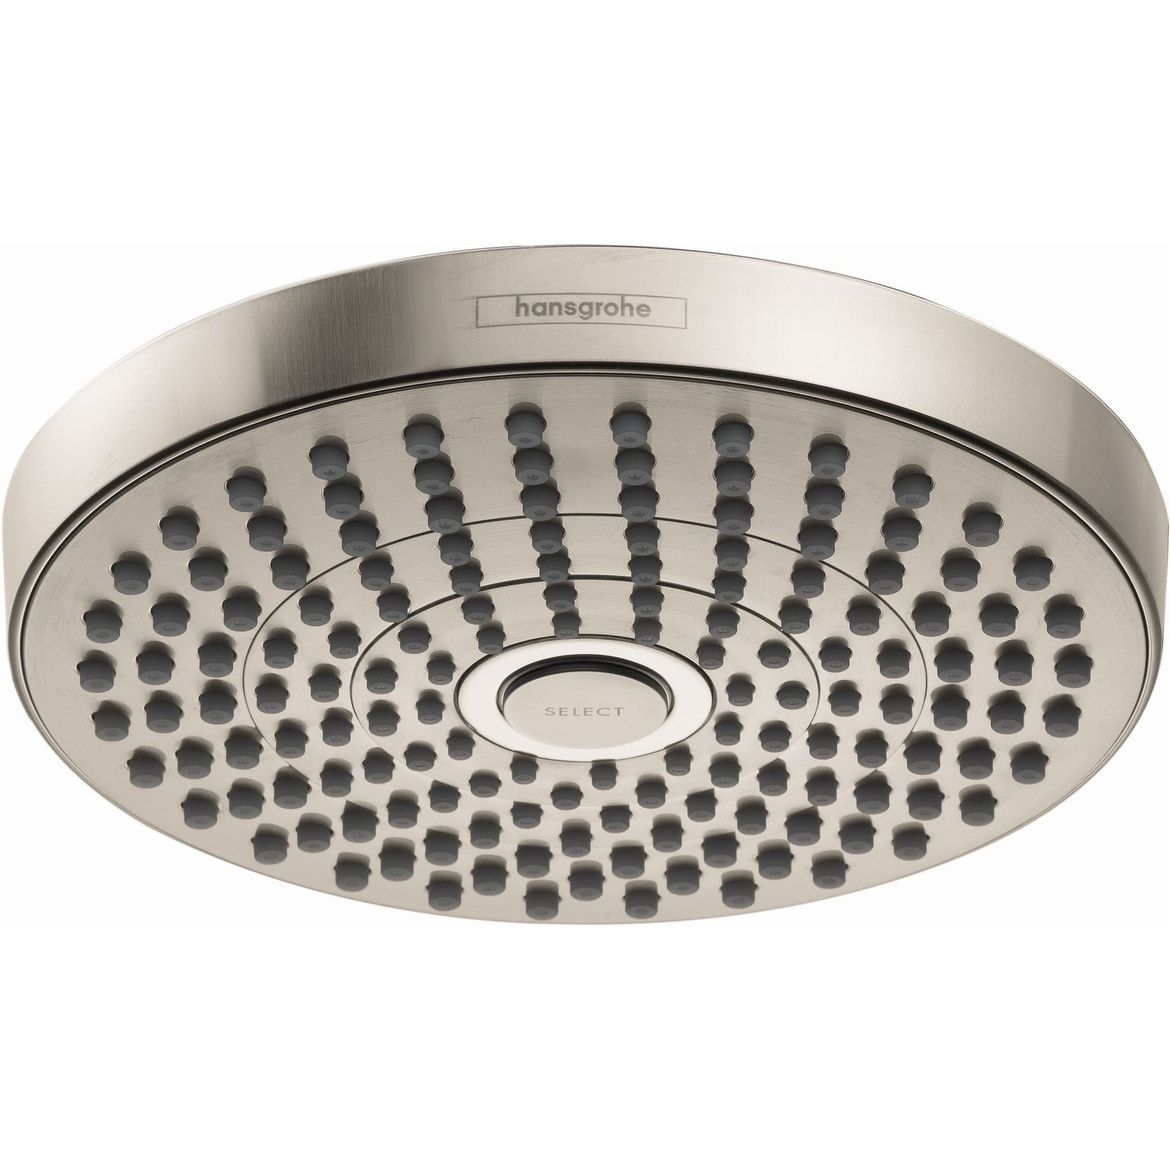 Hansgrohe 26523 Croma Select S Multi Function 2 Gpm Shower Head